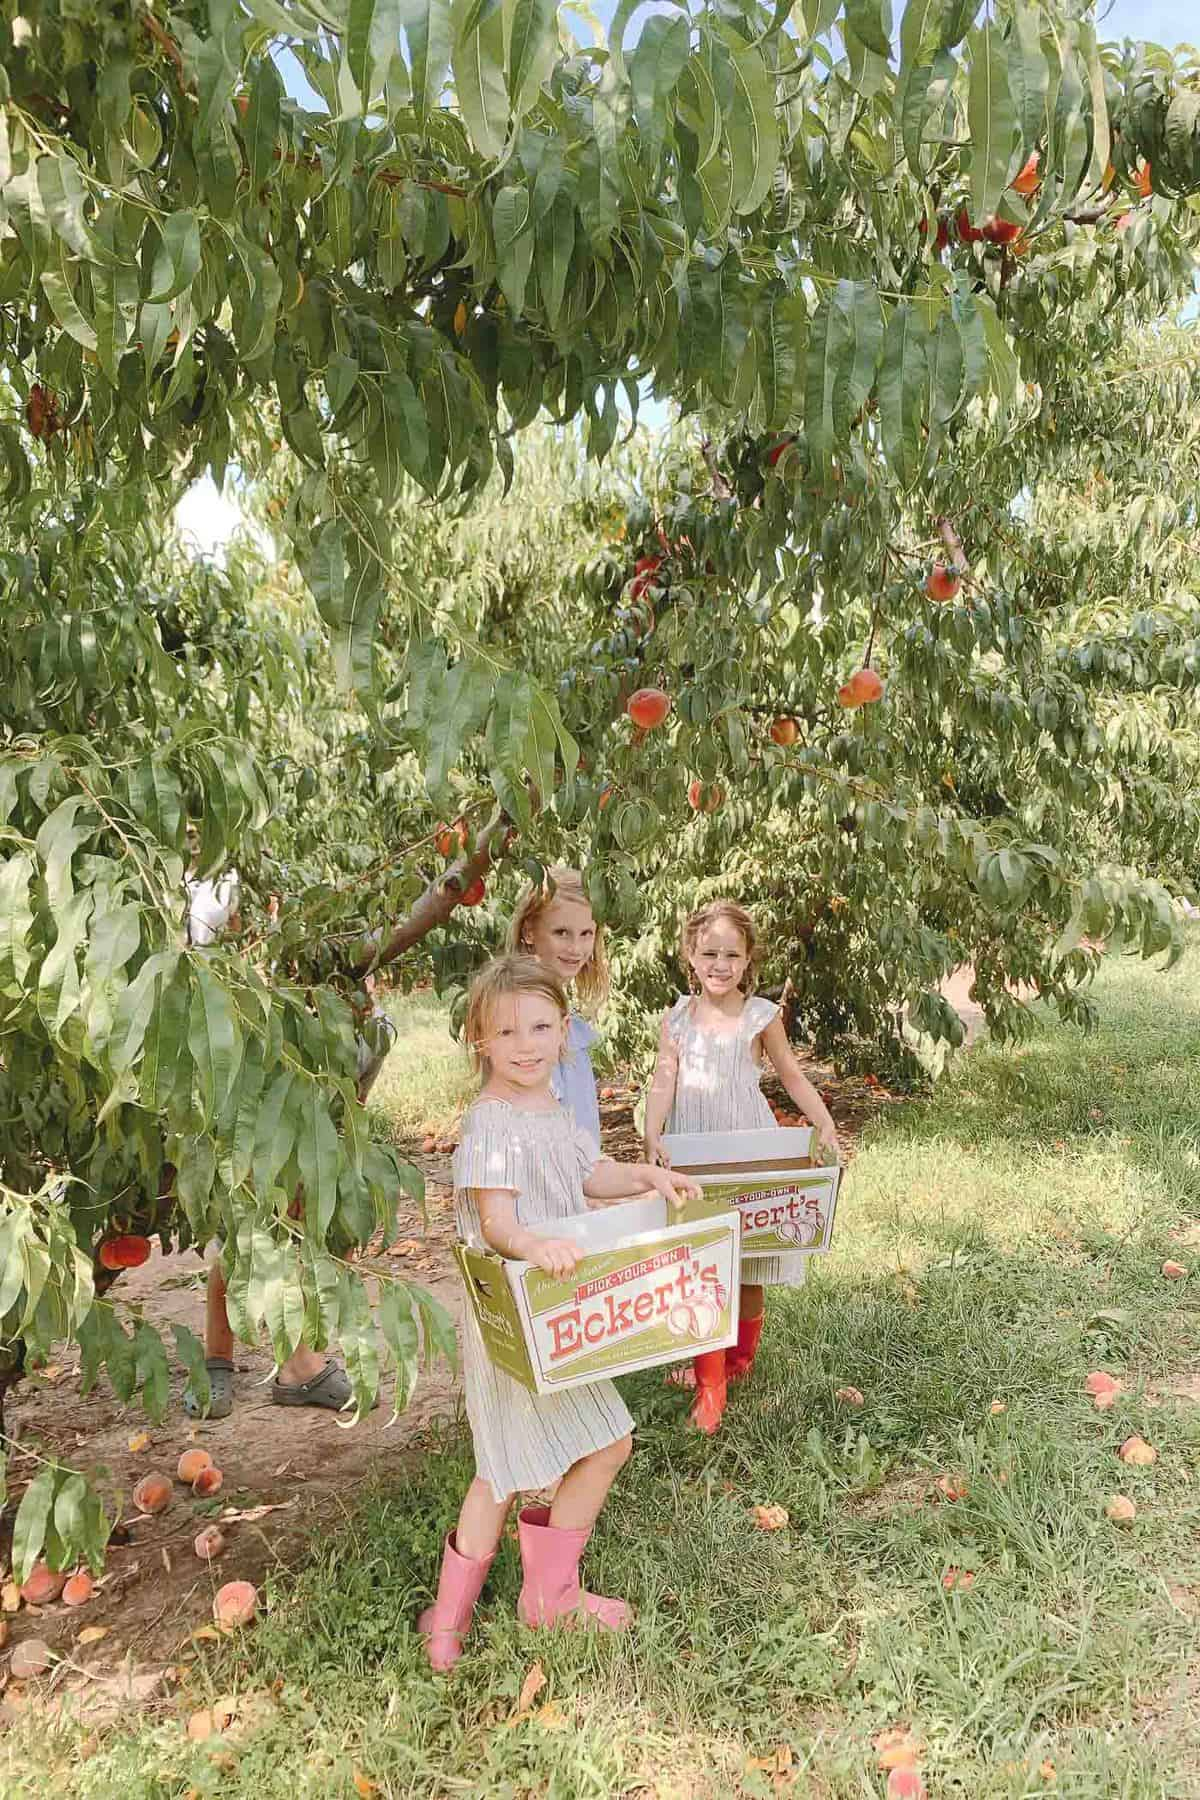 Little girls picking peaches at Eckert's farm in St. Louis.